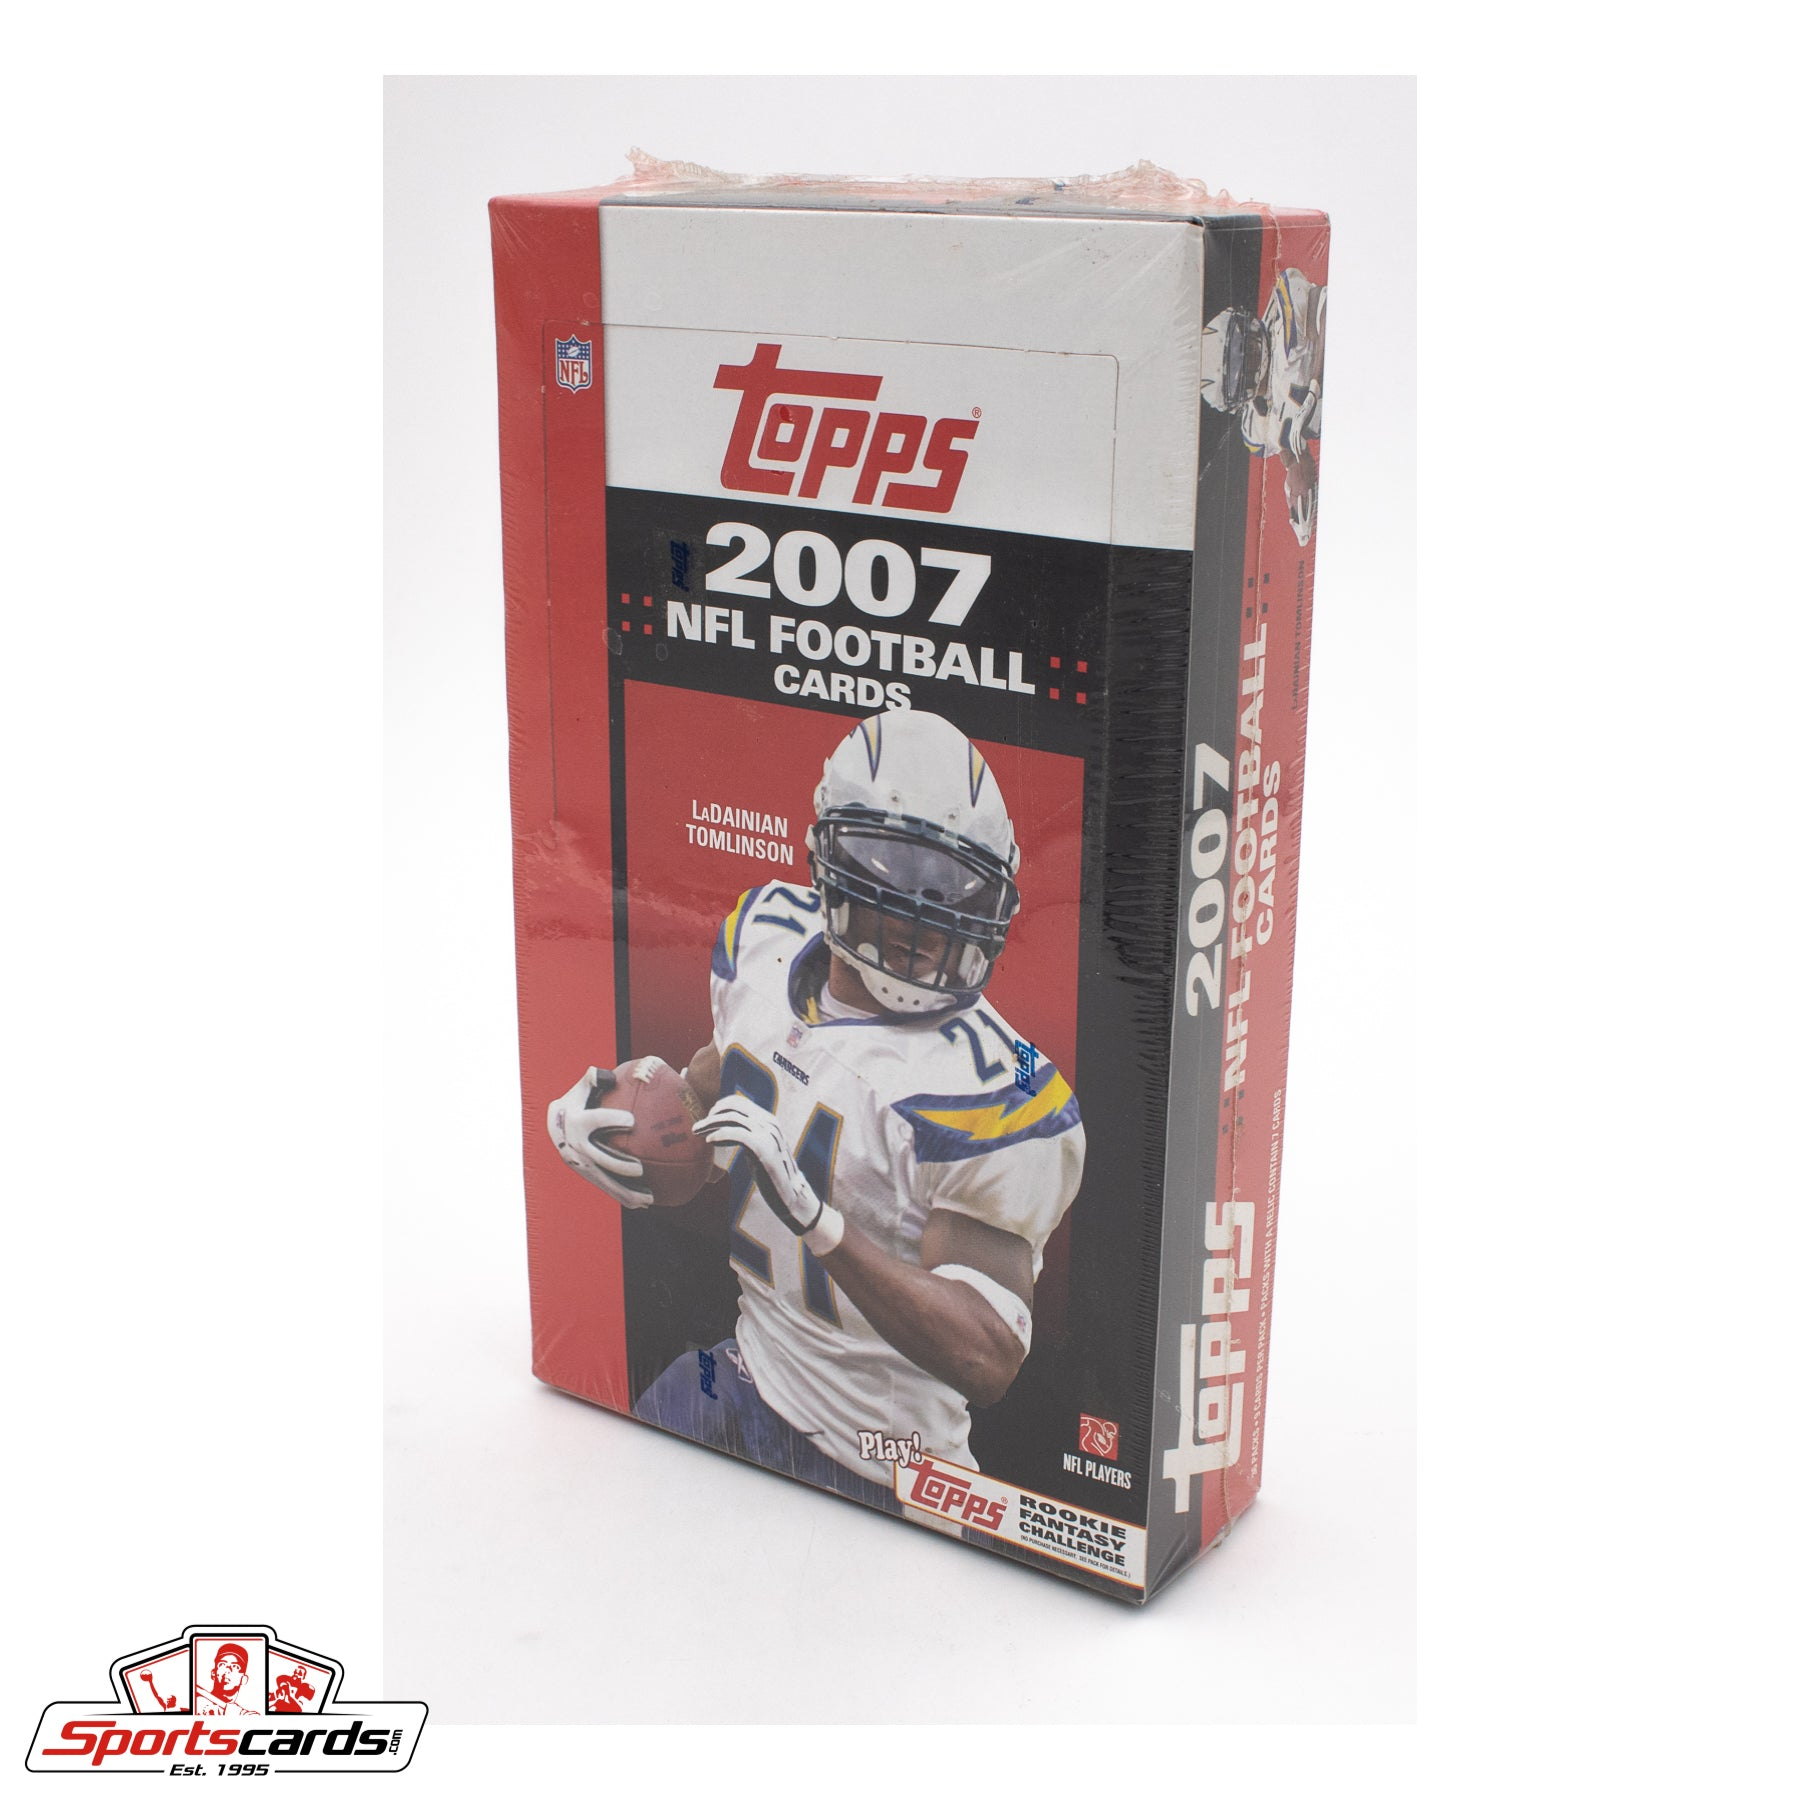 2007 Topps NFL Football Factory Sealed Box